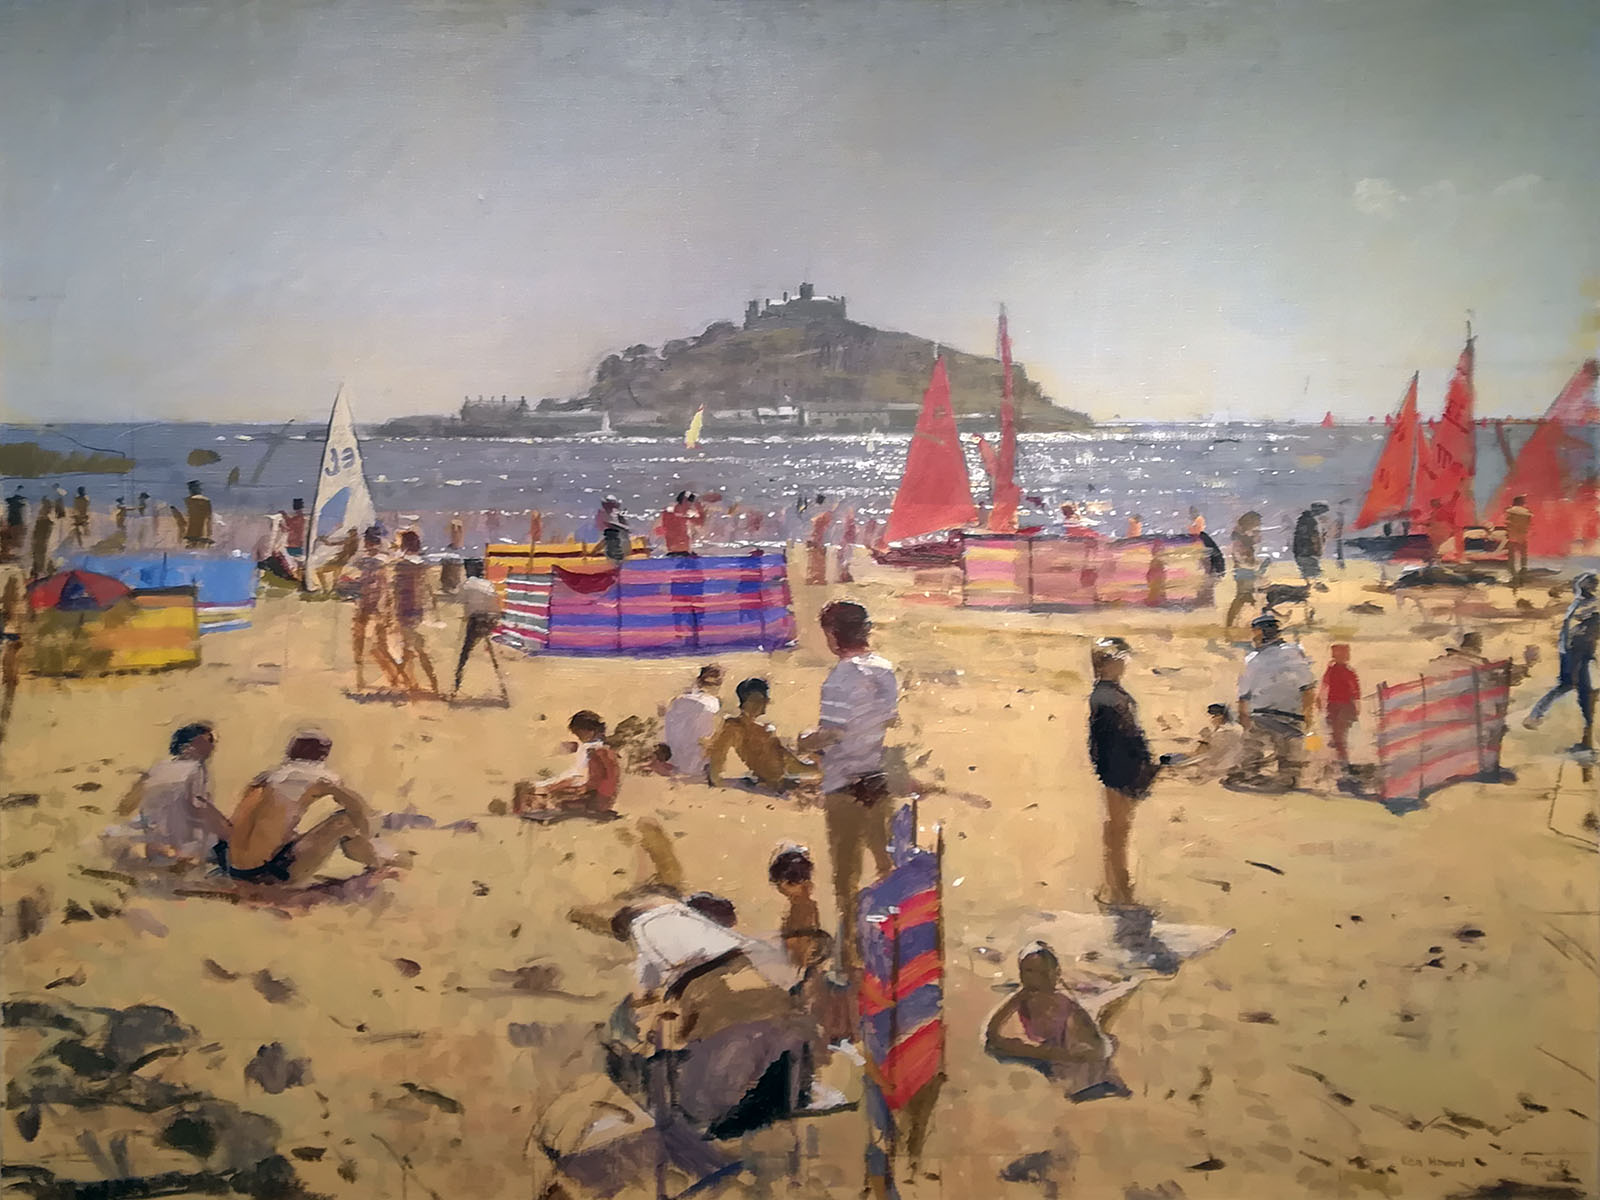 Ken Howard - Marazion with St Michael's Mount, Cornwall